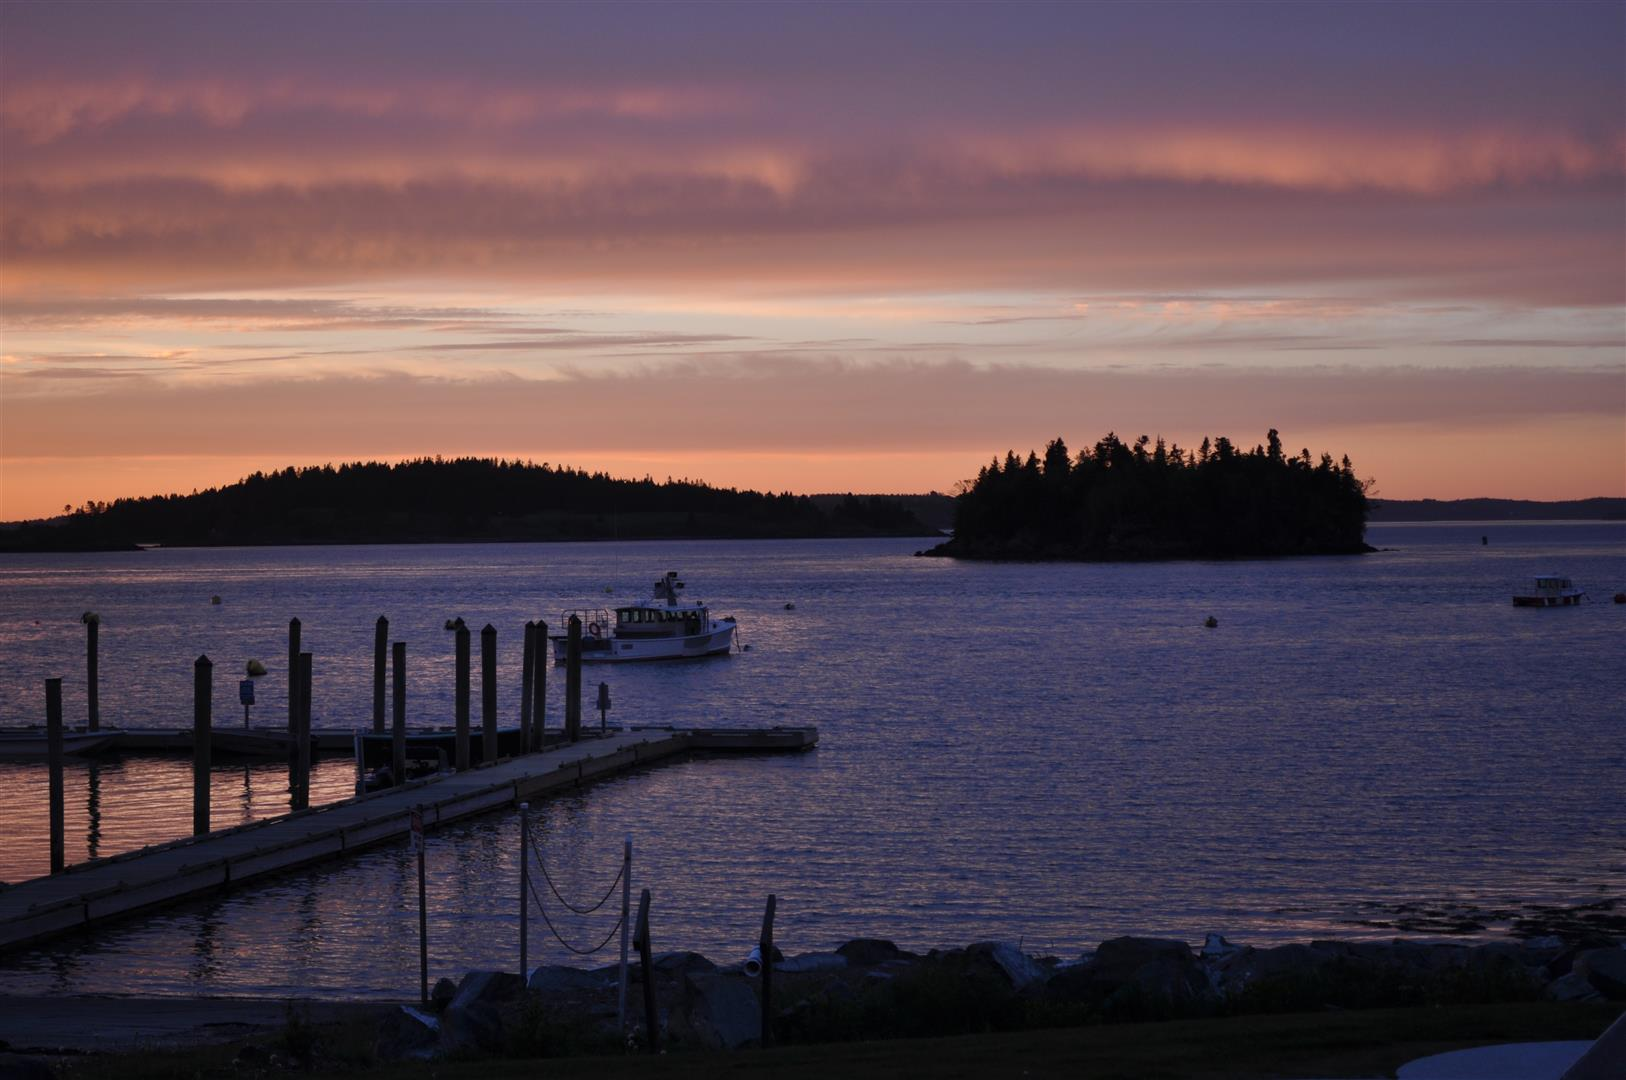 Sunset, Lubec, ME 2